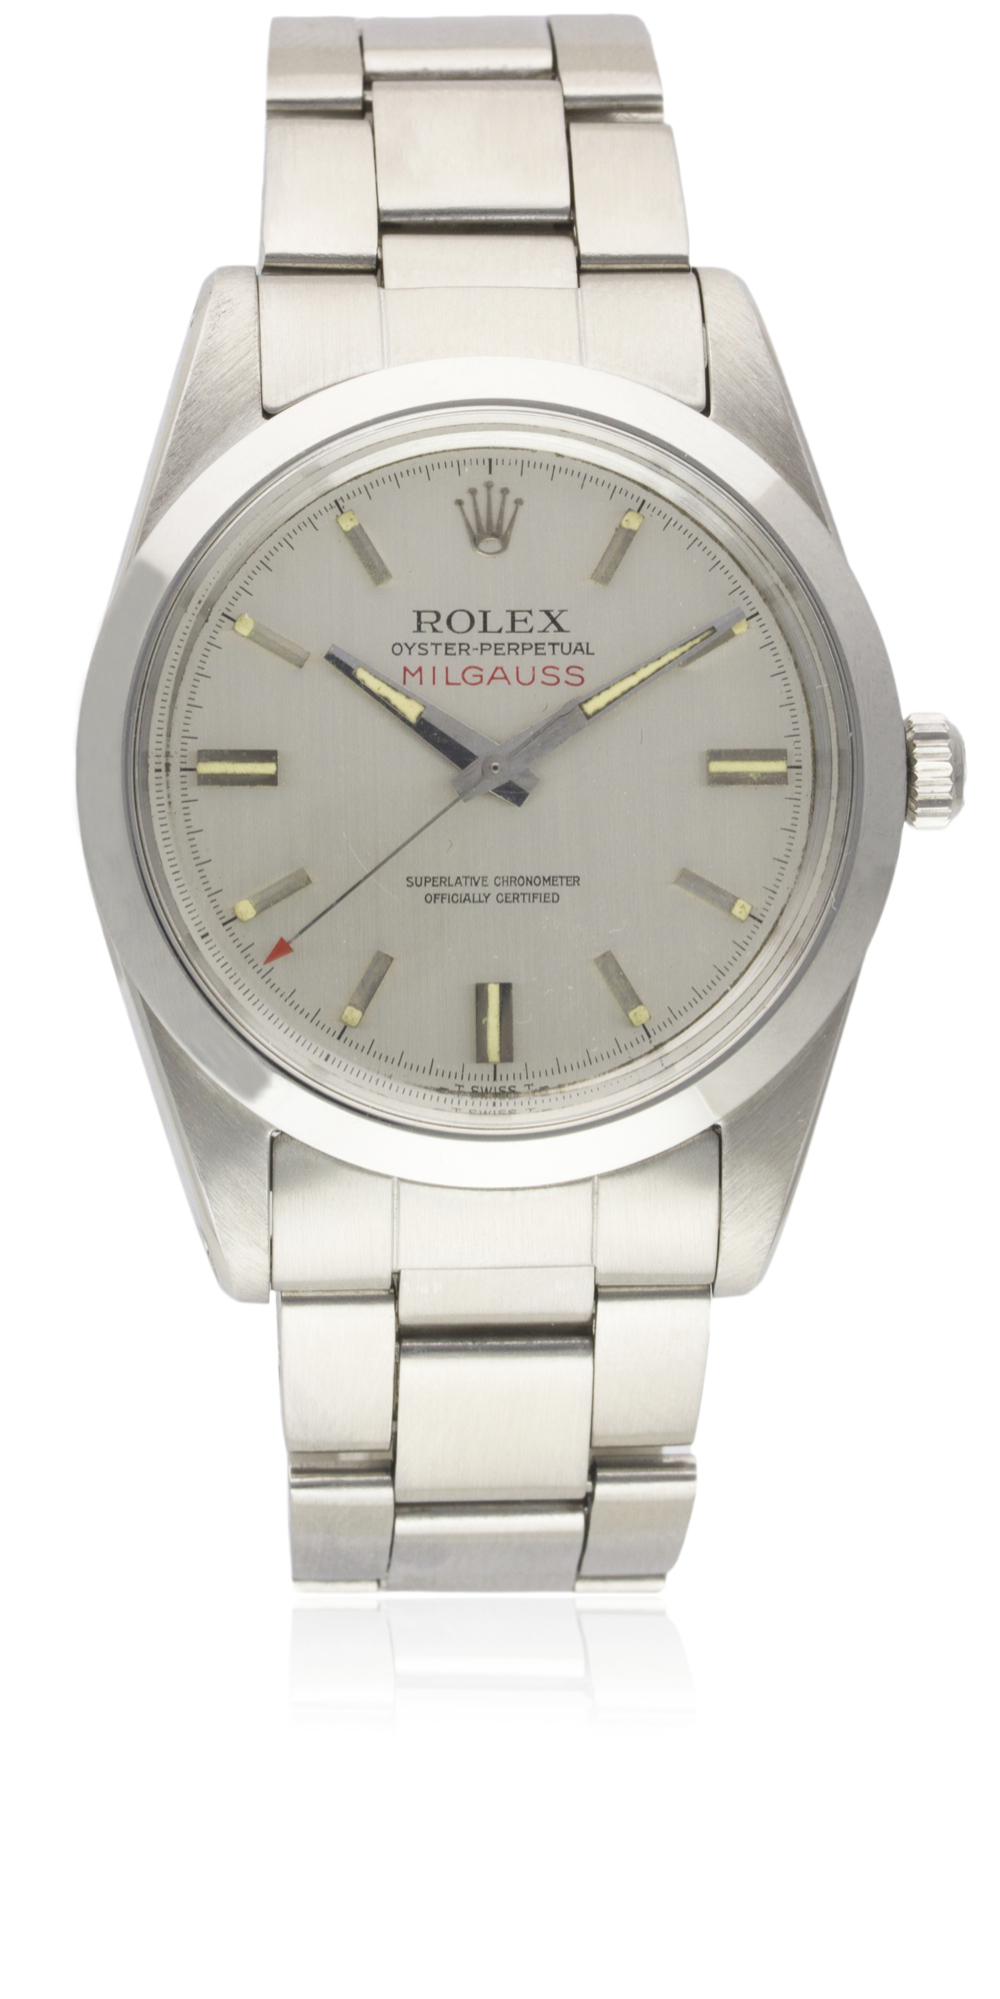 A RARE GENTLEMAN'S STAINLESS STEEL ROLEX OYSTER PERPETUAL MILGAUSS BRACELET WATCH CIRCA 1968, REF. - Image 3 of 3